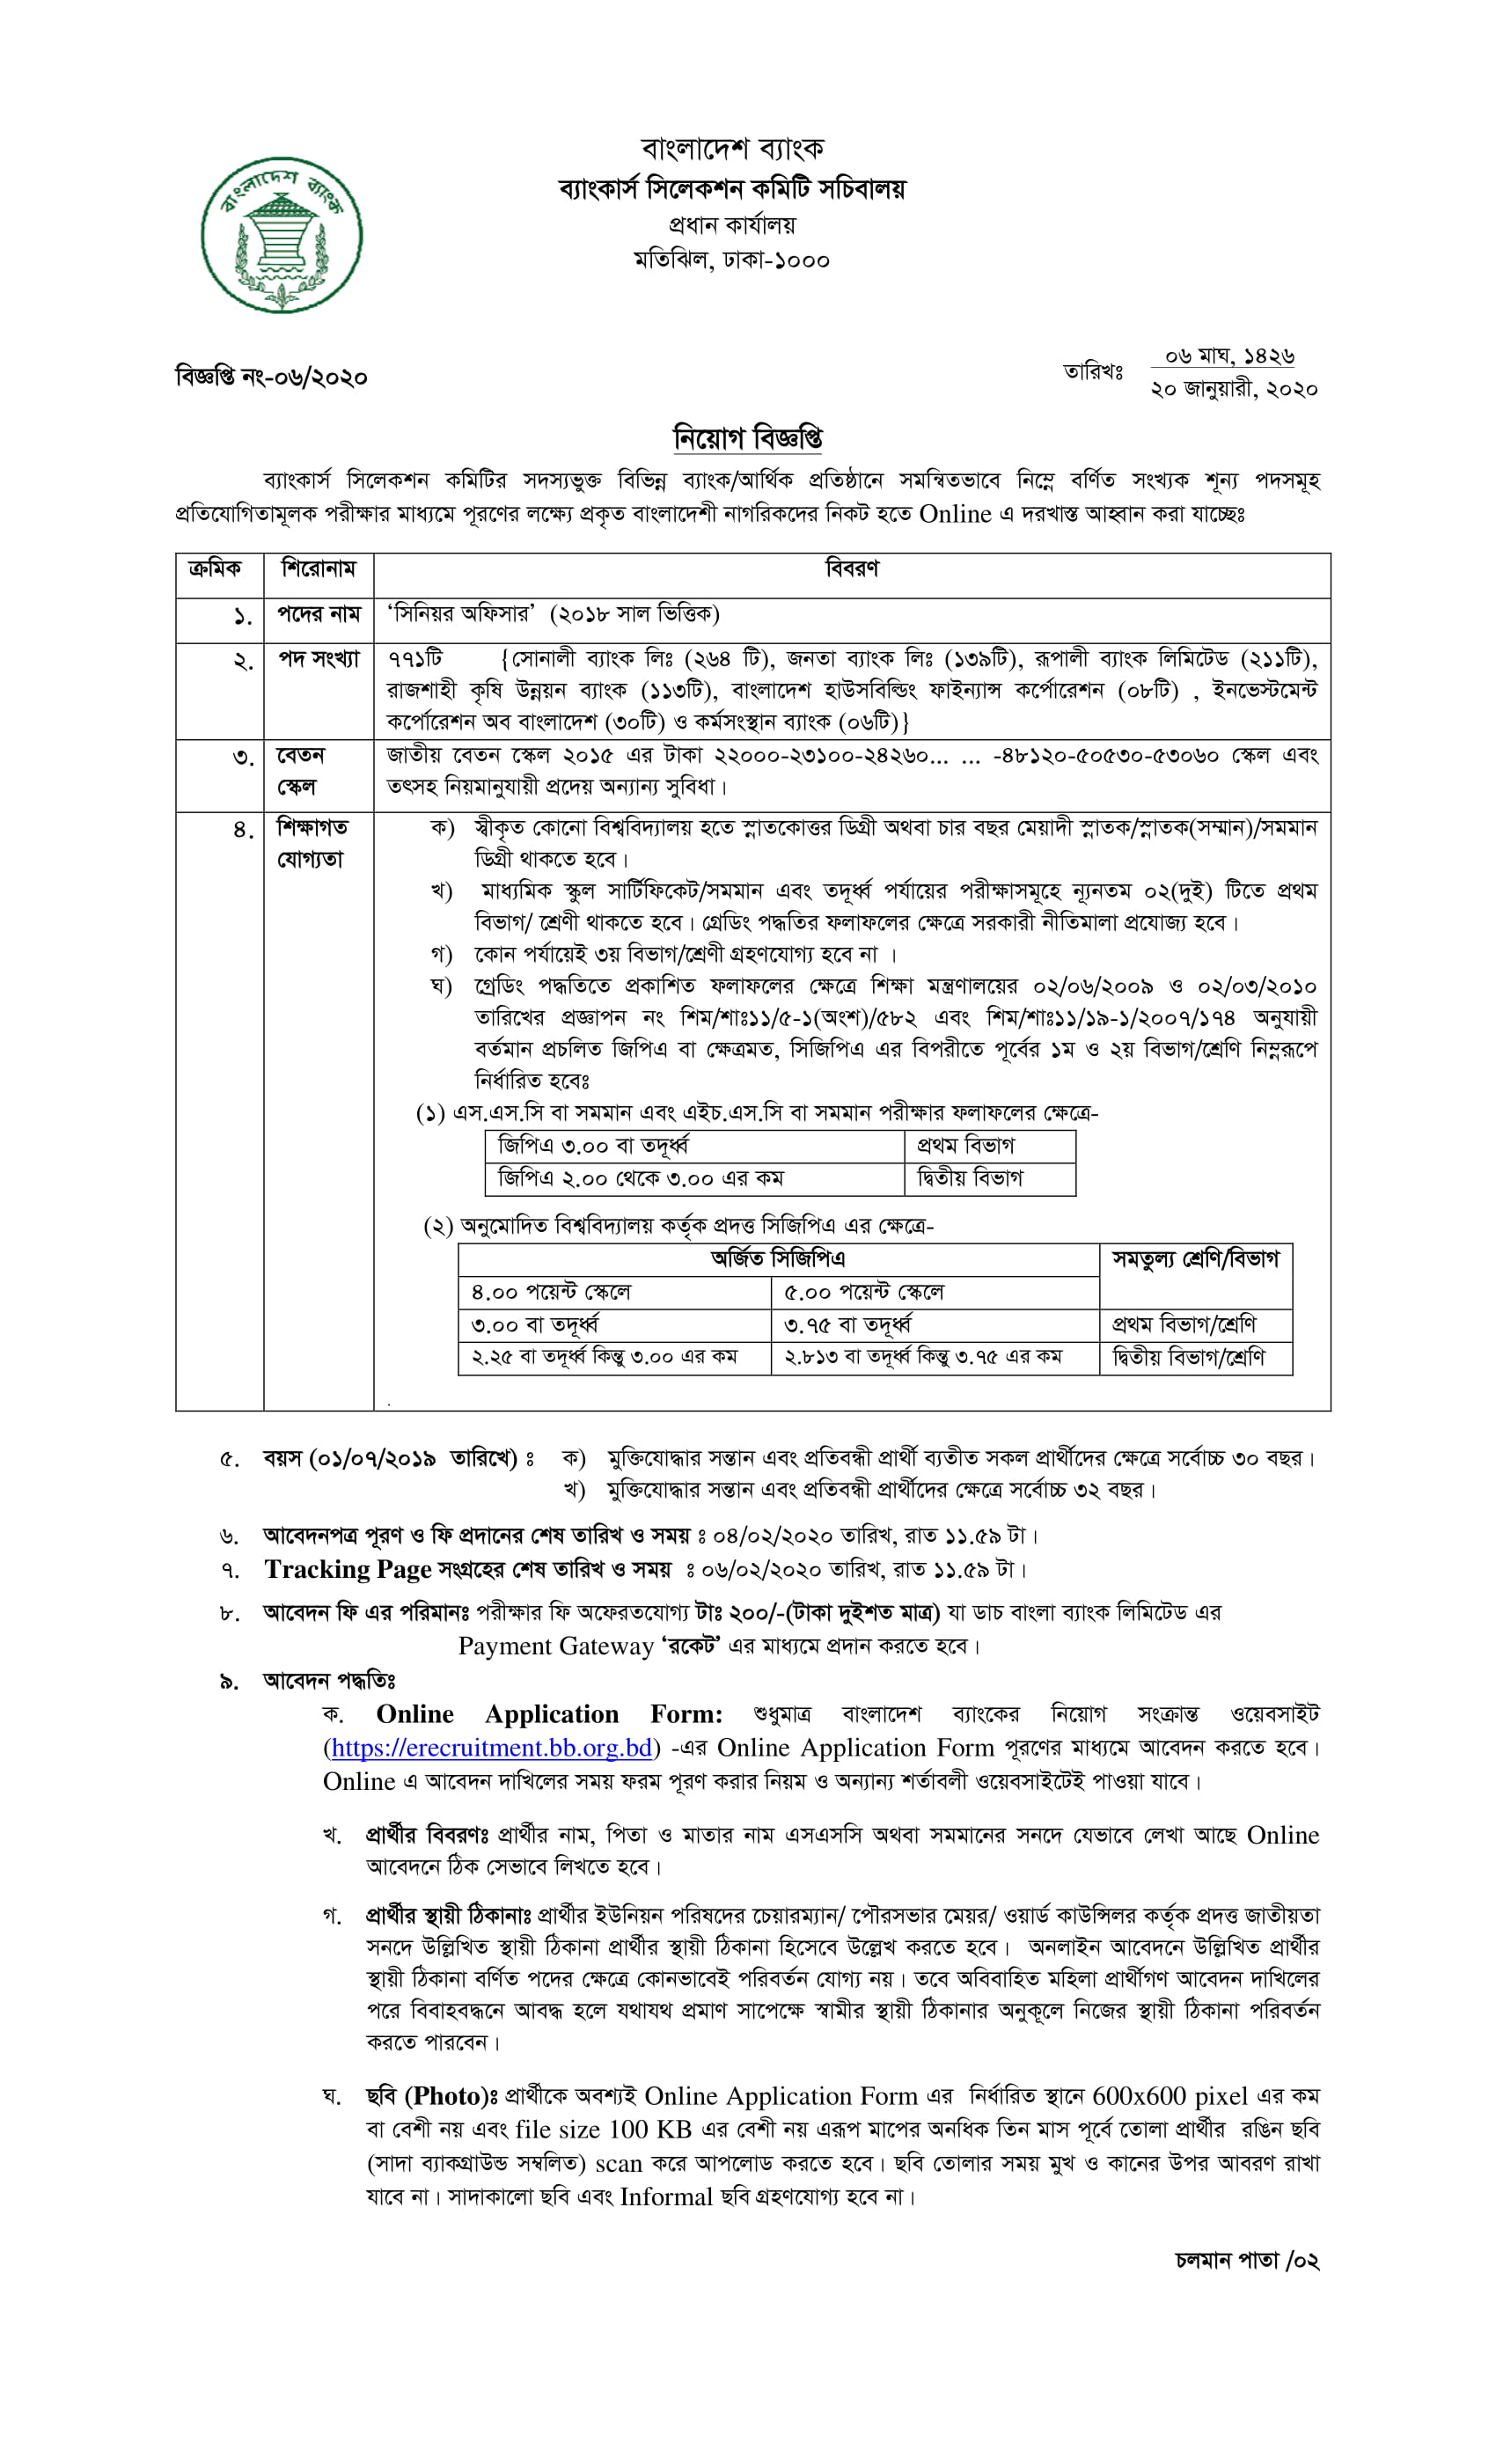 rupali-bank-job-circular